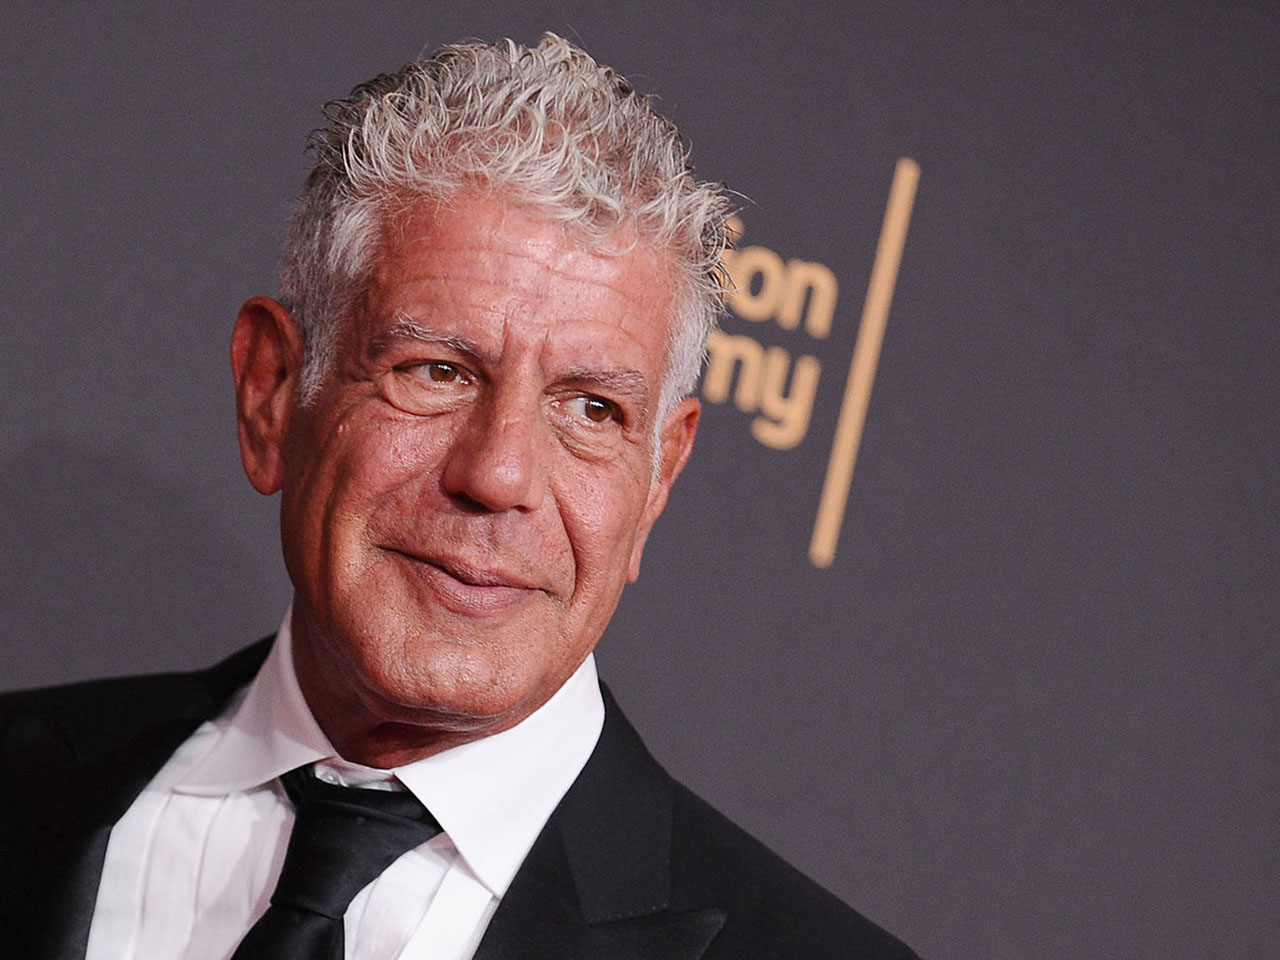 Anthony Bourdain wearing a suit